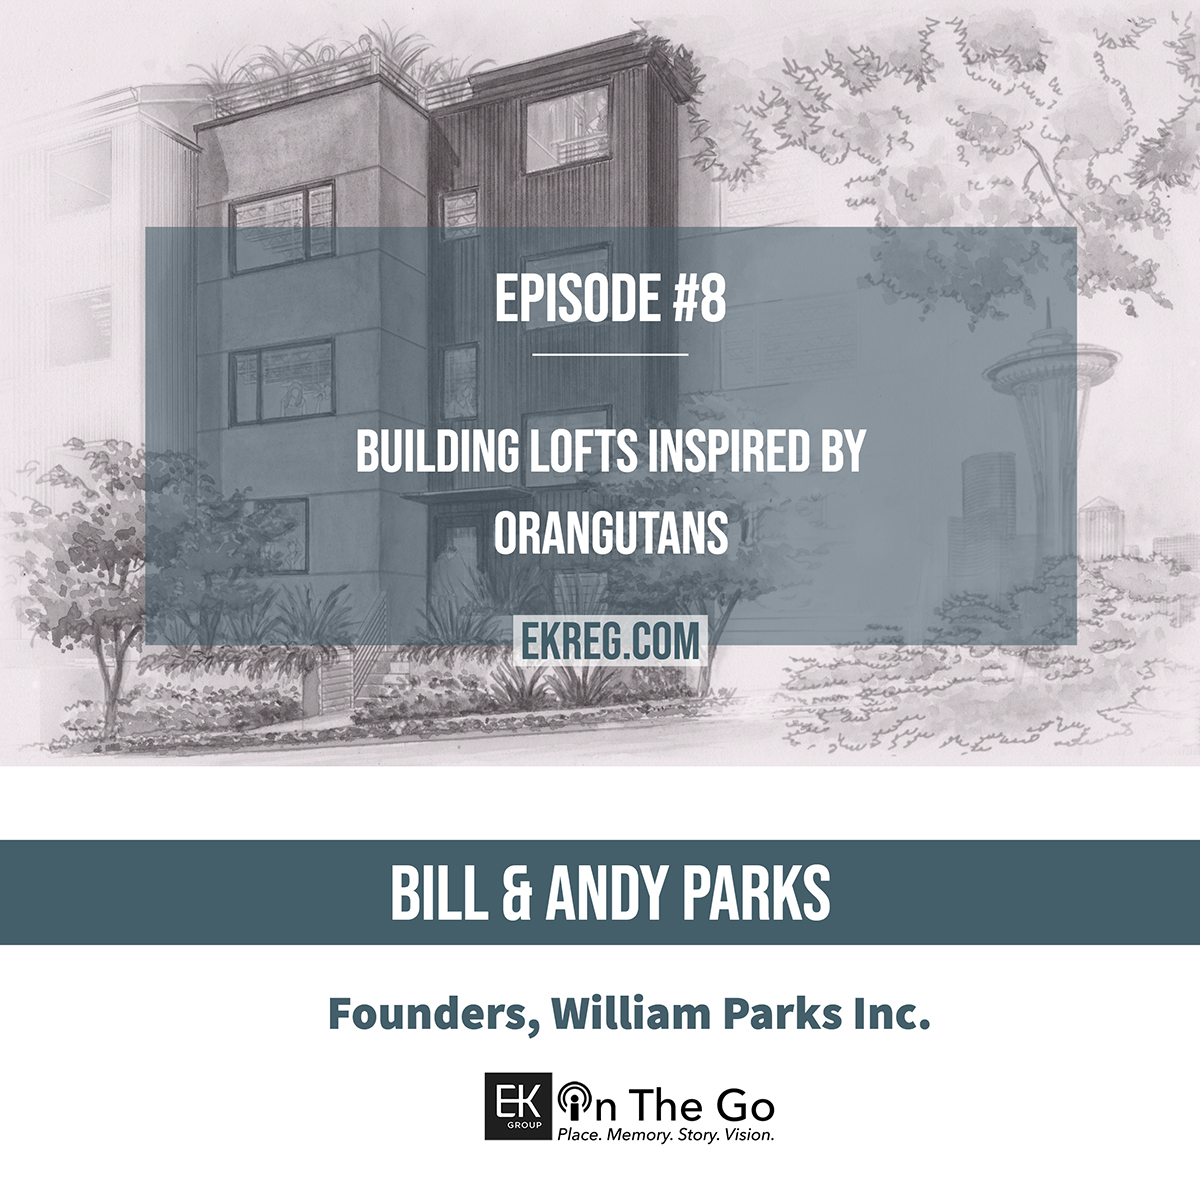 Bill & Andy Parks